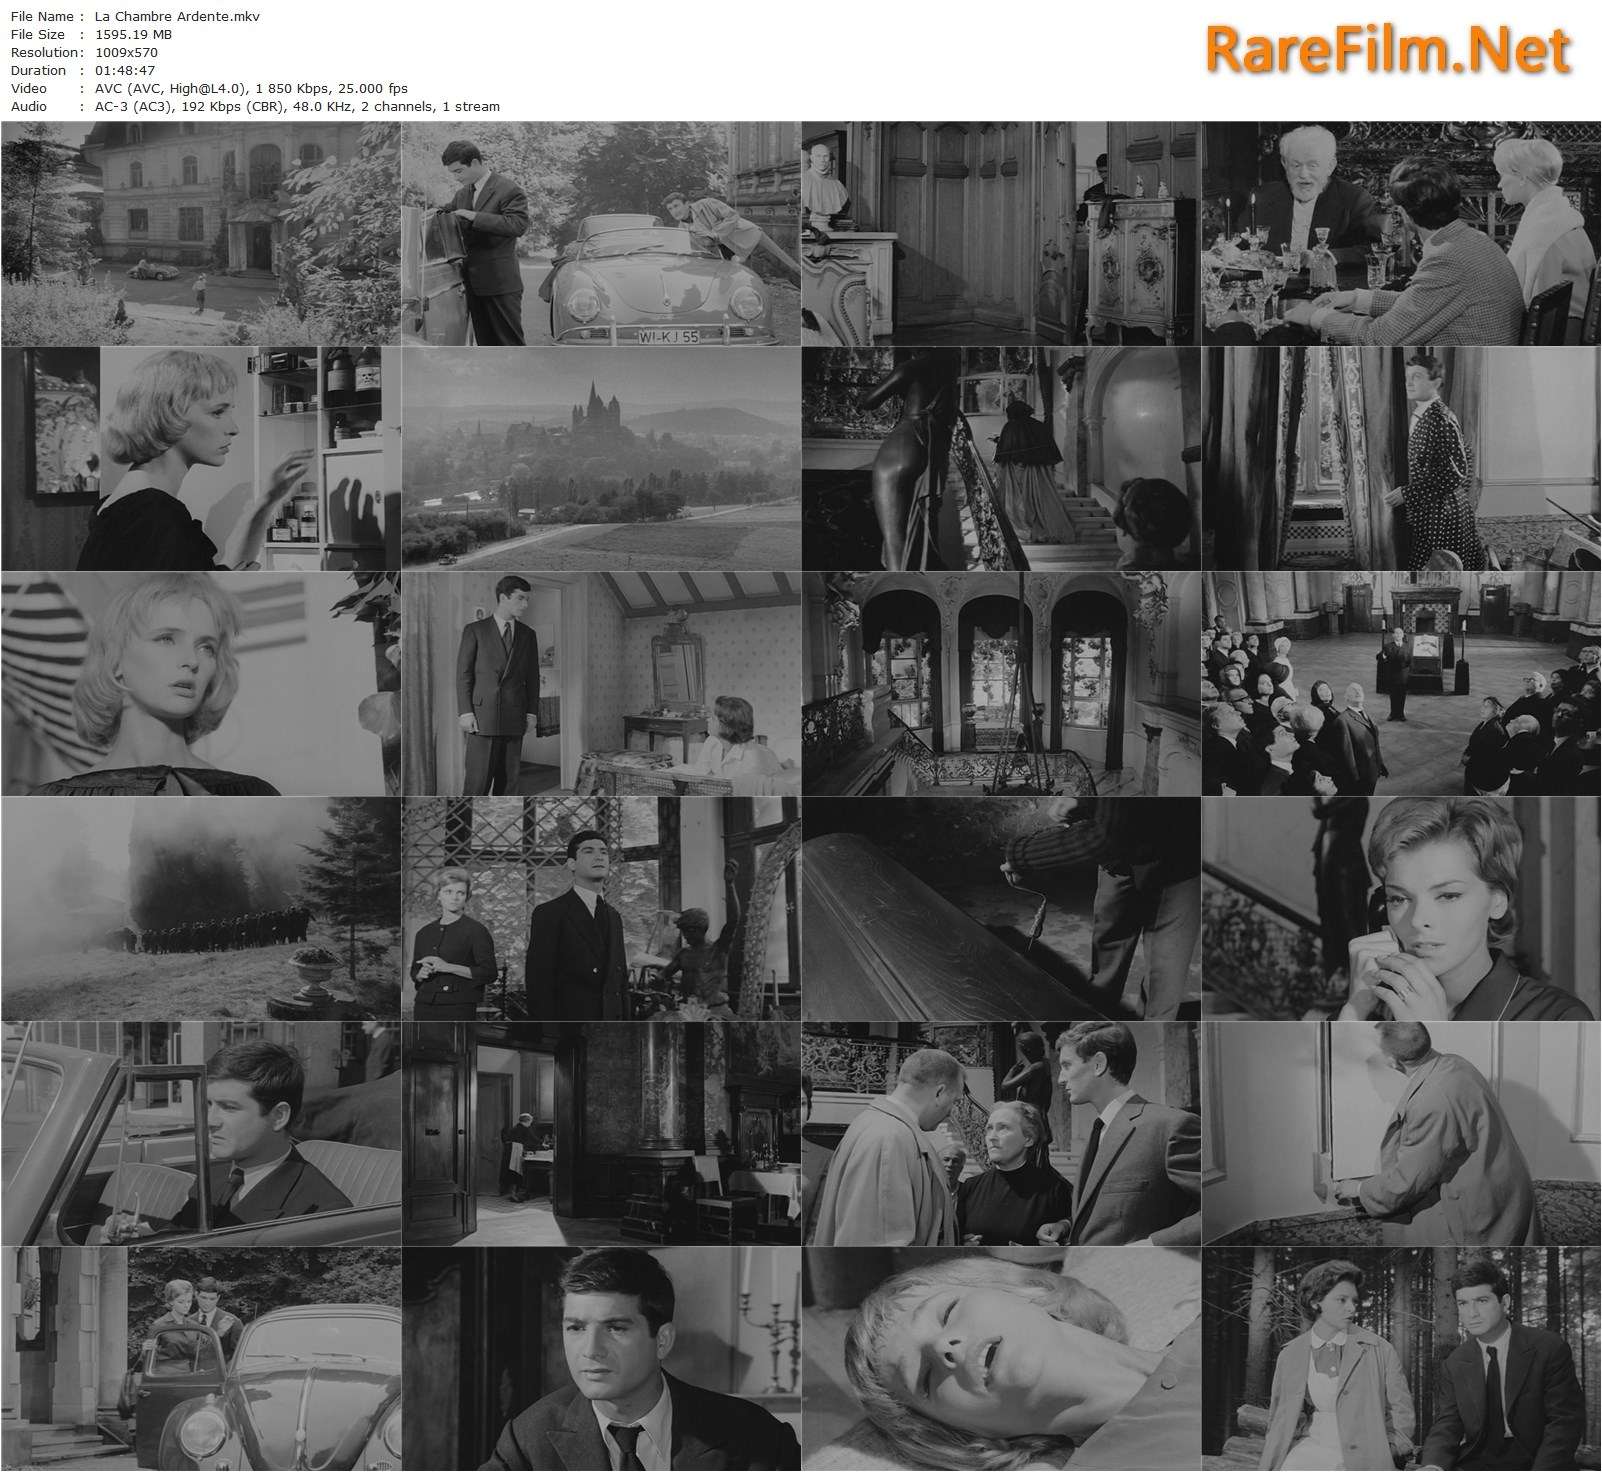 La Chambre Ardente Julien Duvivier The Burning Court 1962 Julien Duvivier Nadja Tiller Jean